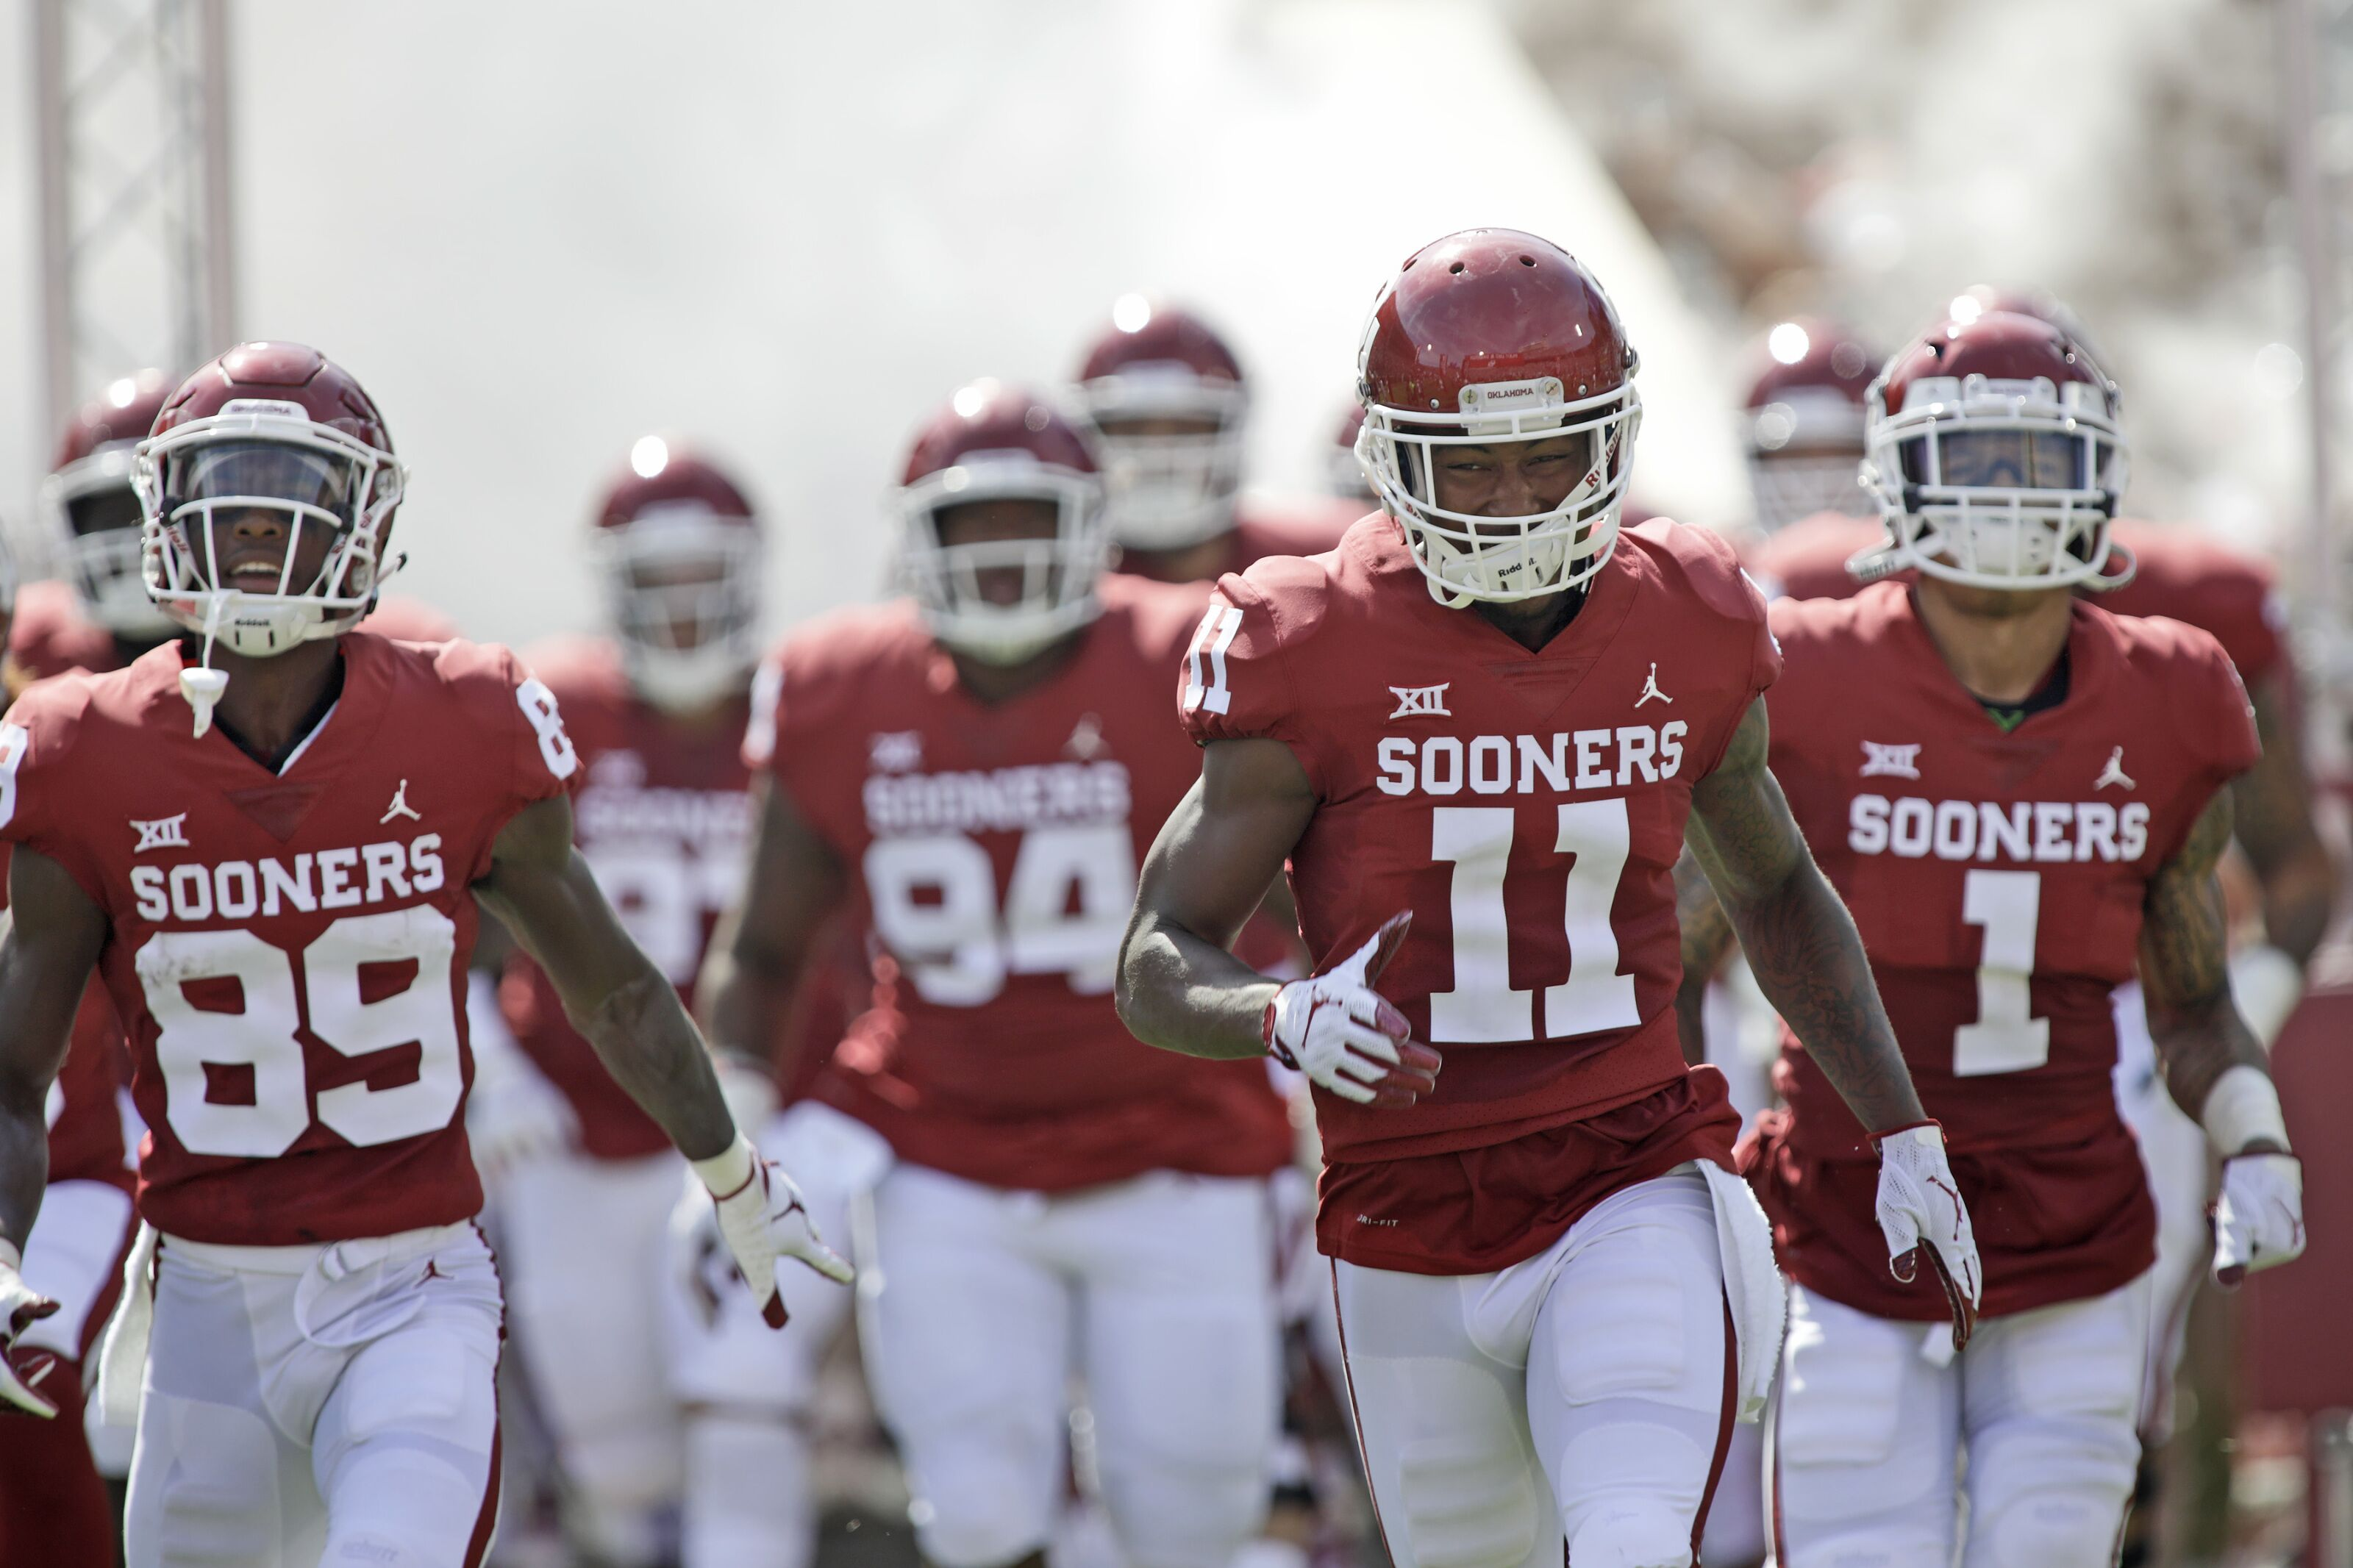 Oklahoma football: Sooners finding Dallas area a hotbed for 2020 recruiting